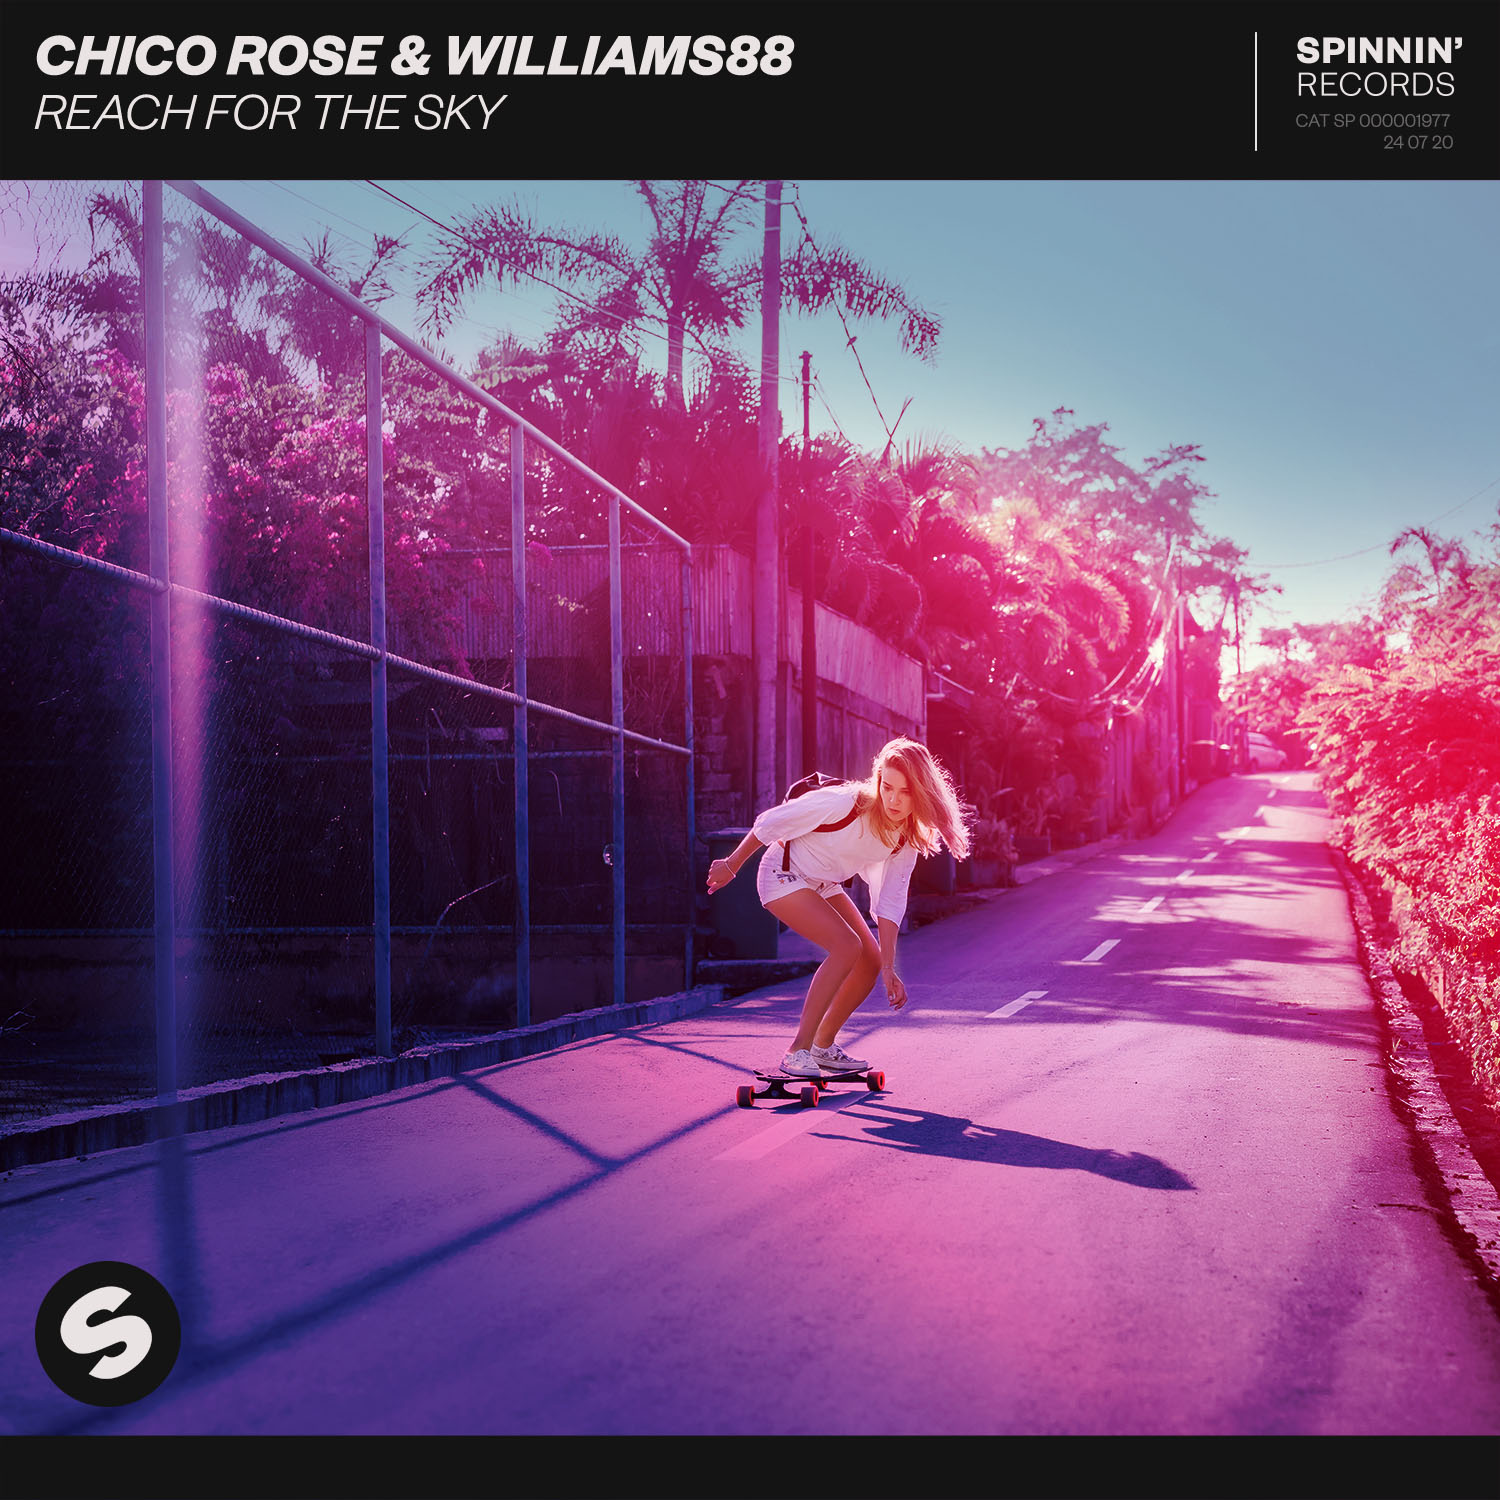 Chico Rose & Williams88 – Reach For The Sky